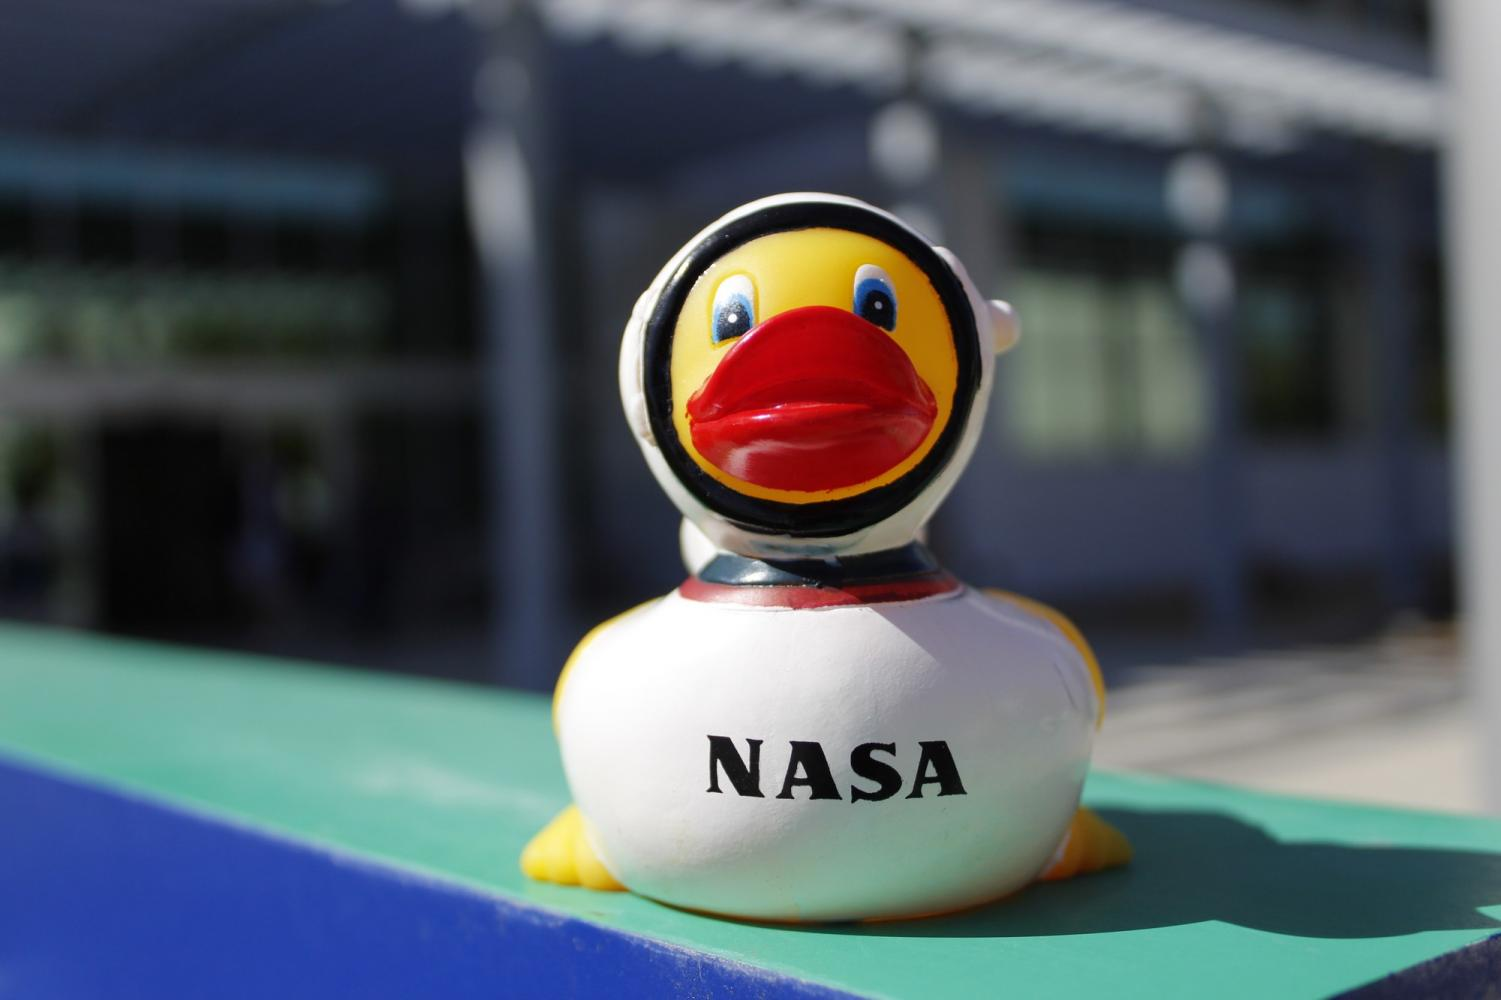 One of the many NASA ducks Yulisa Jimenez hopes to collect in the coming years.